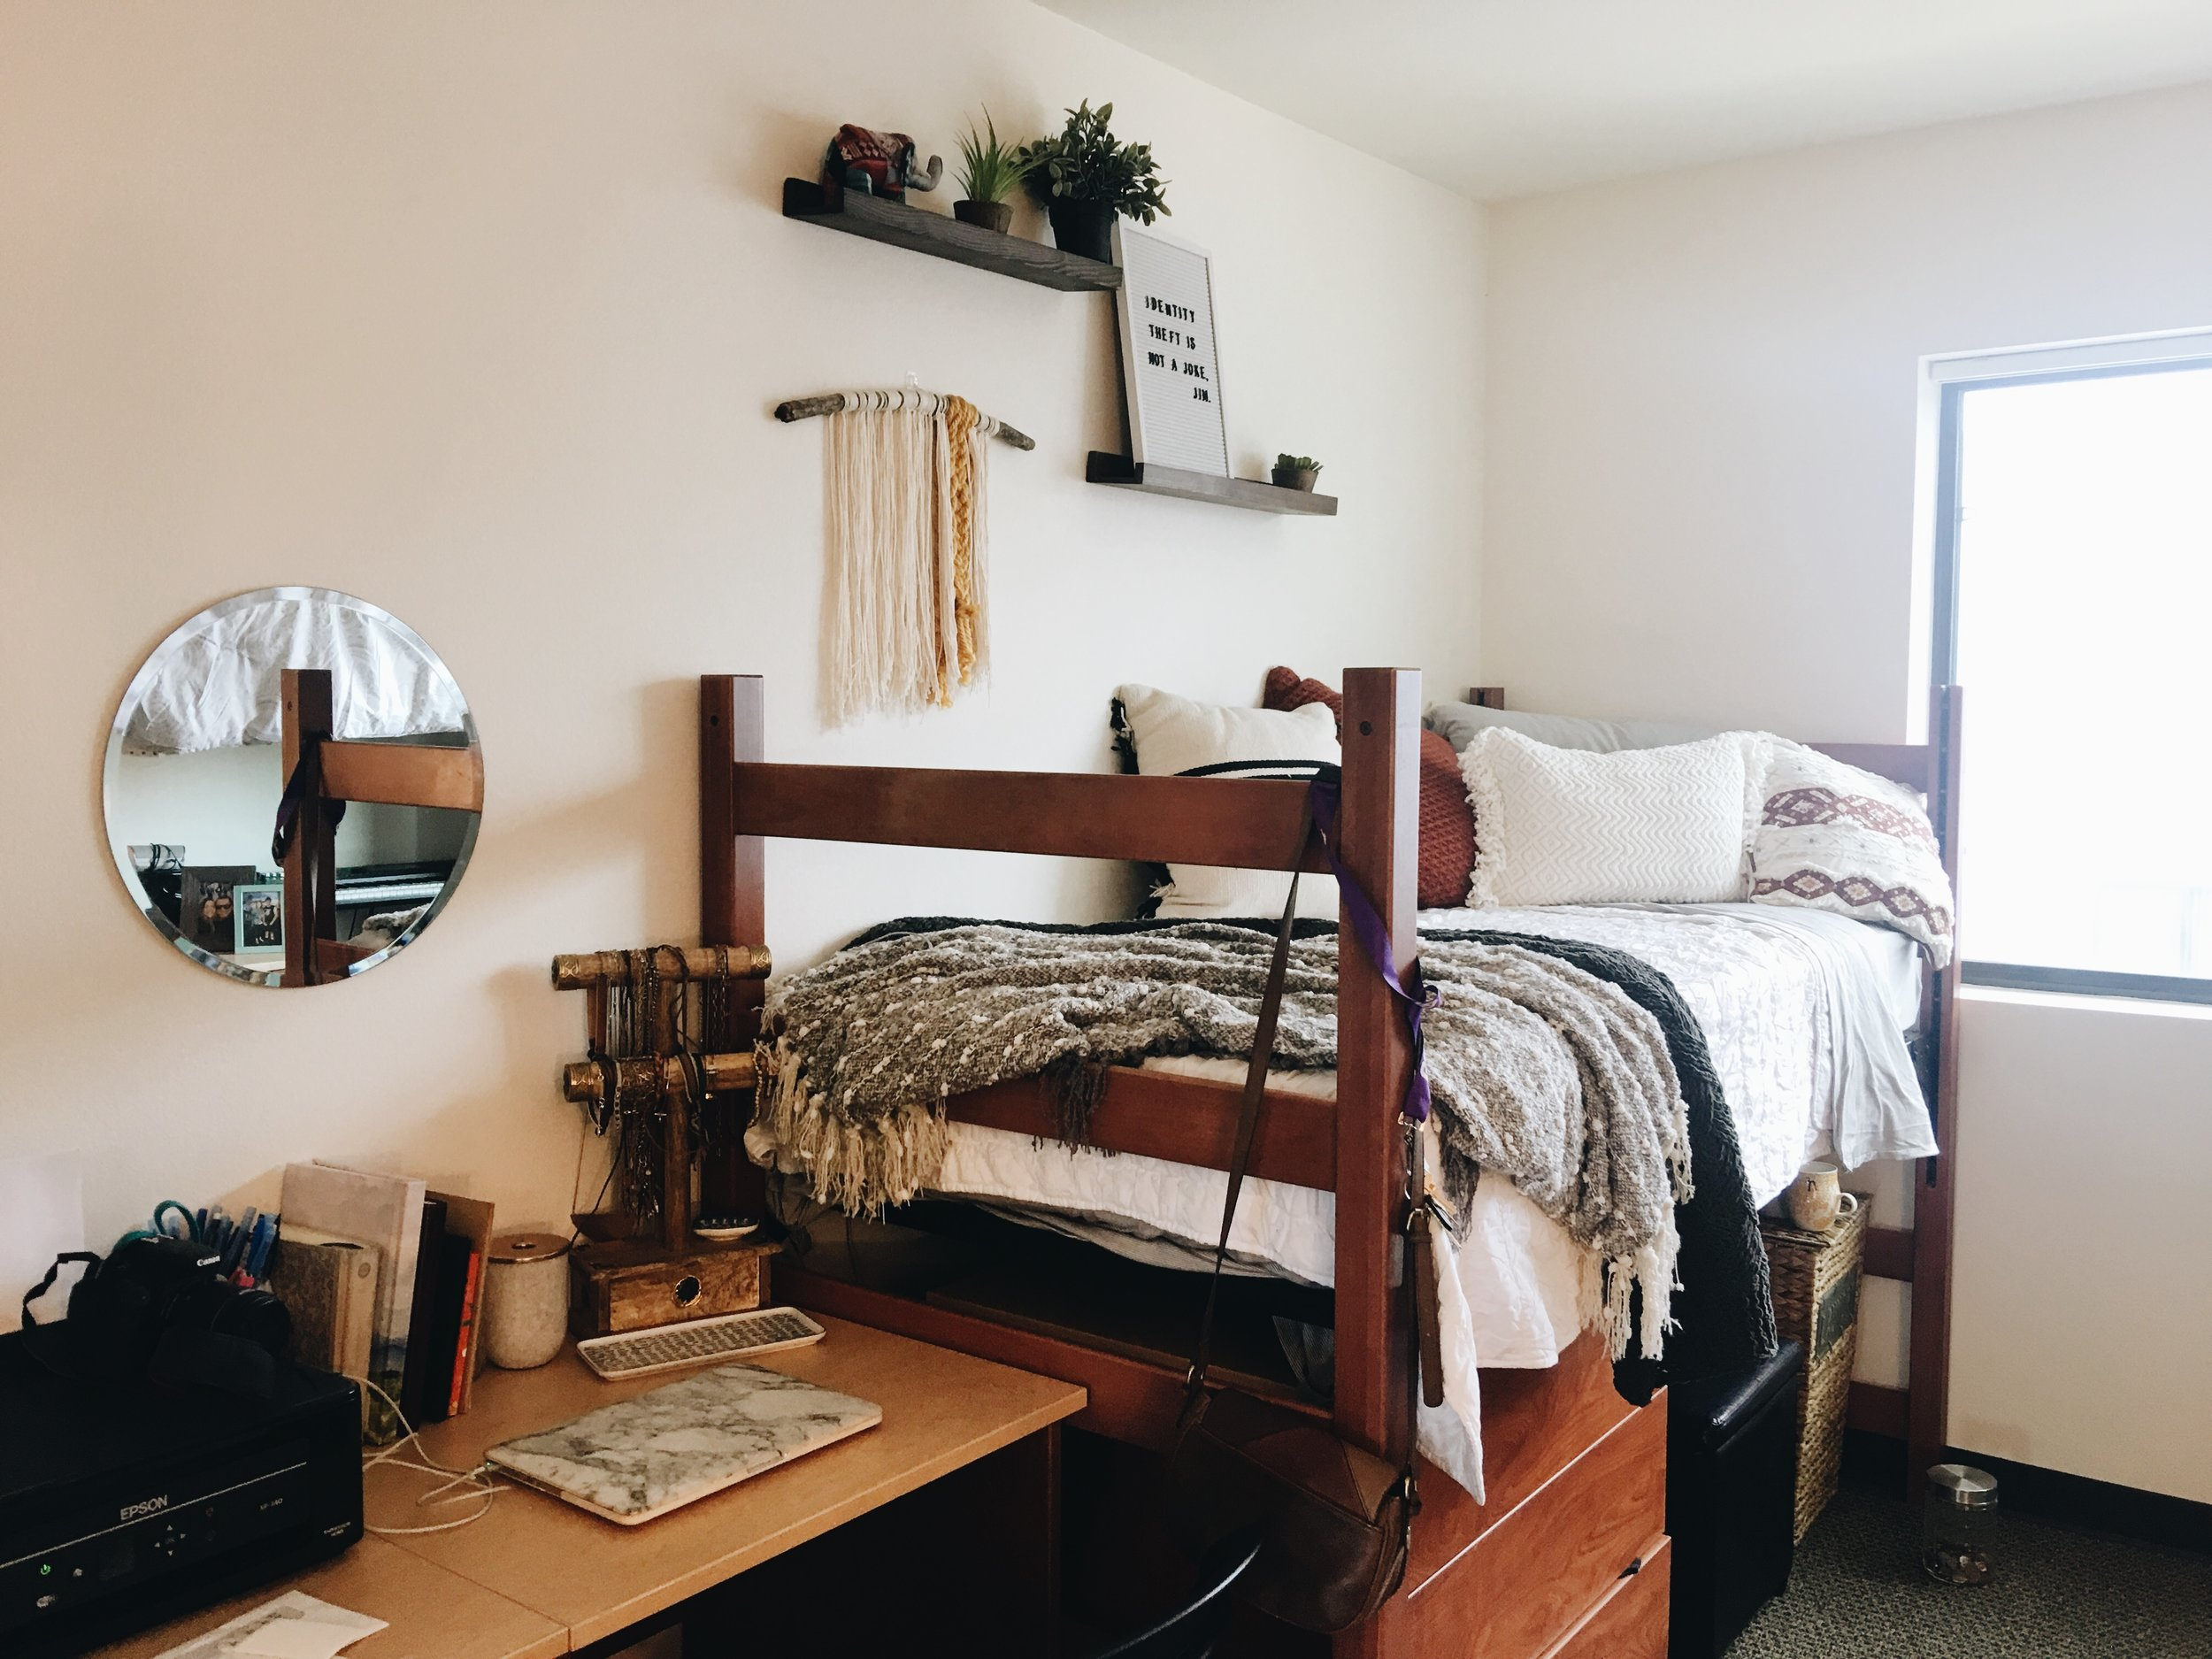 College Dorm Room & Decor — HAN ELAINE